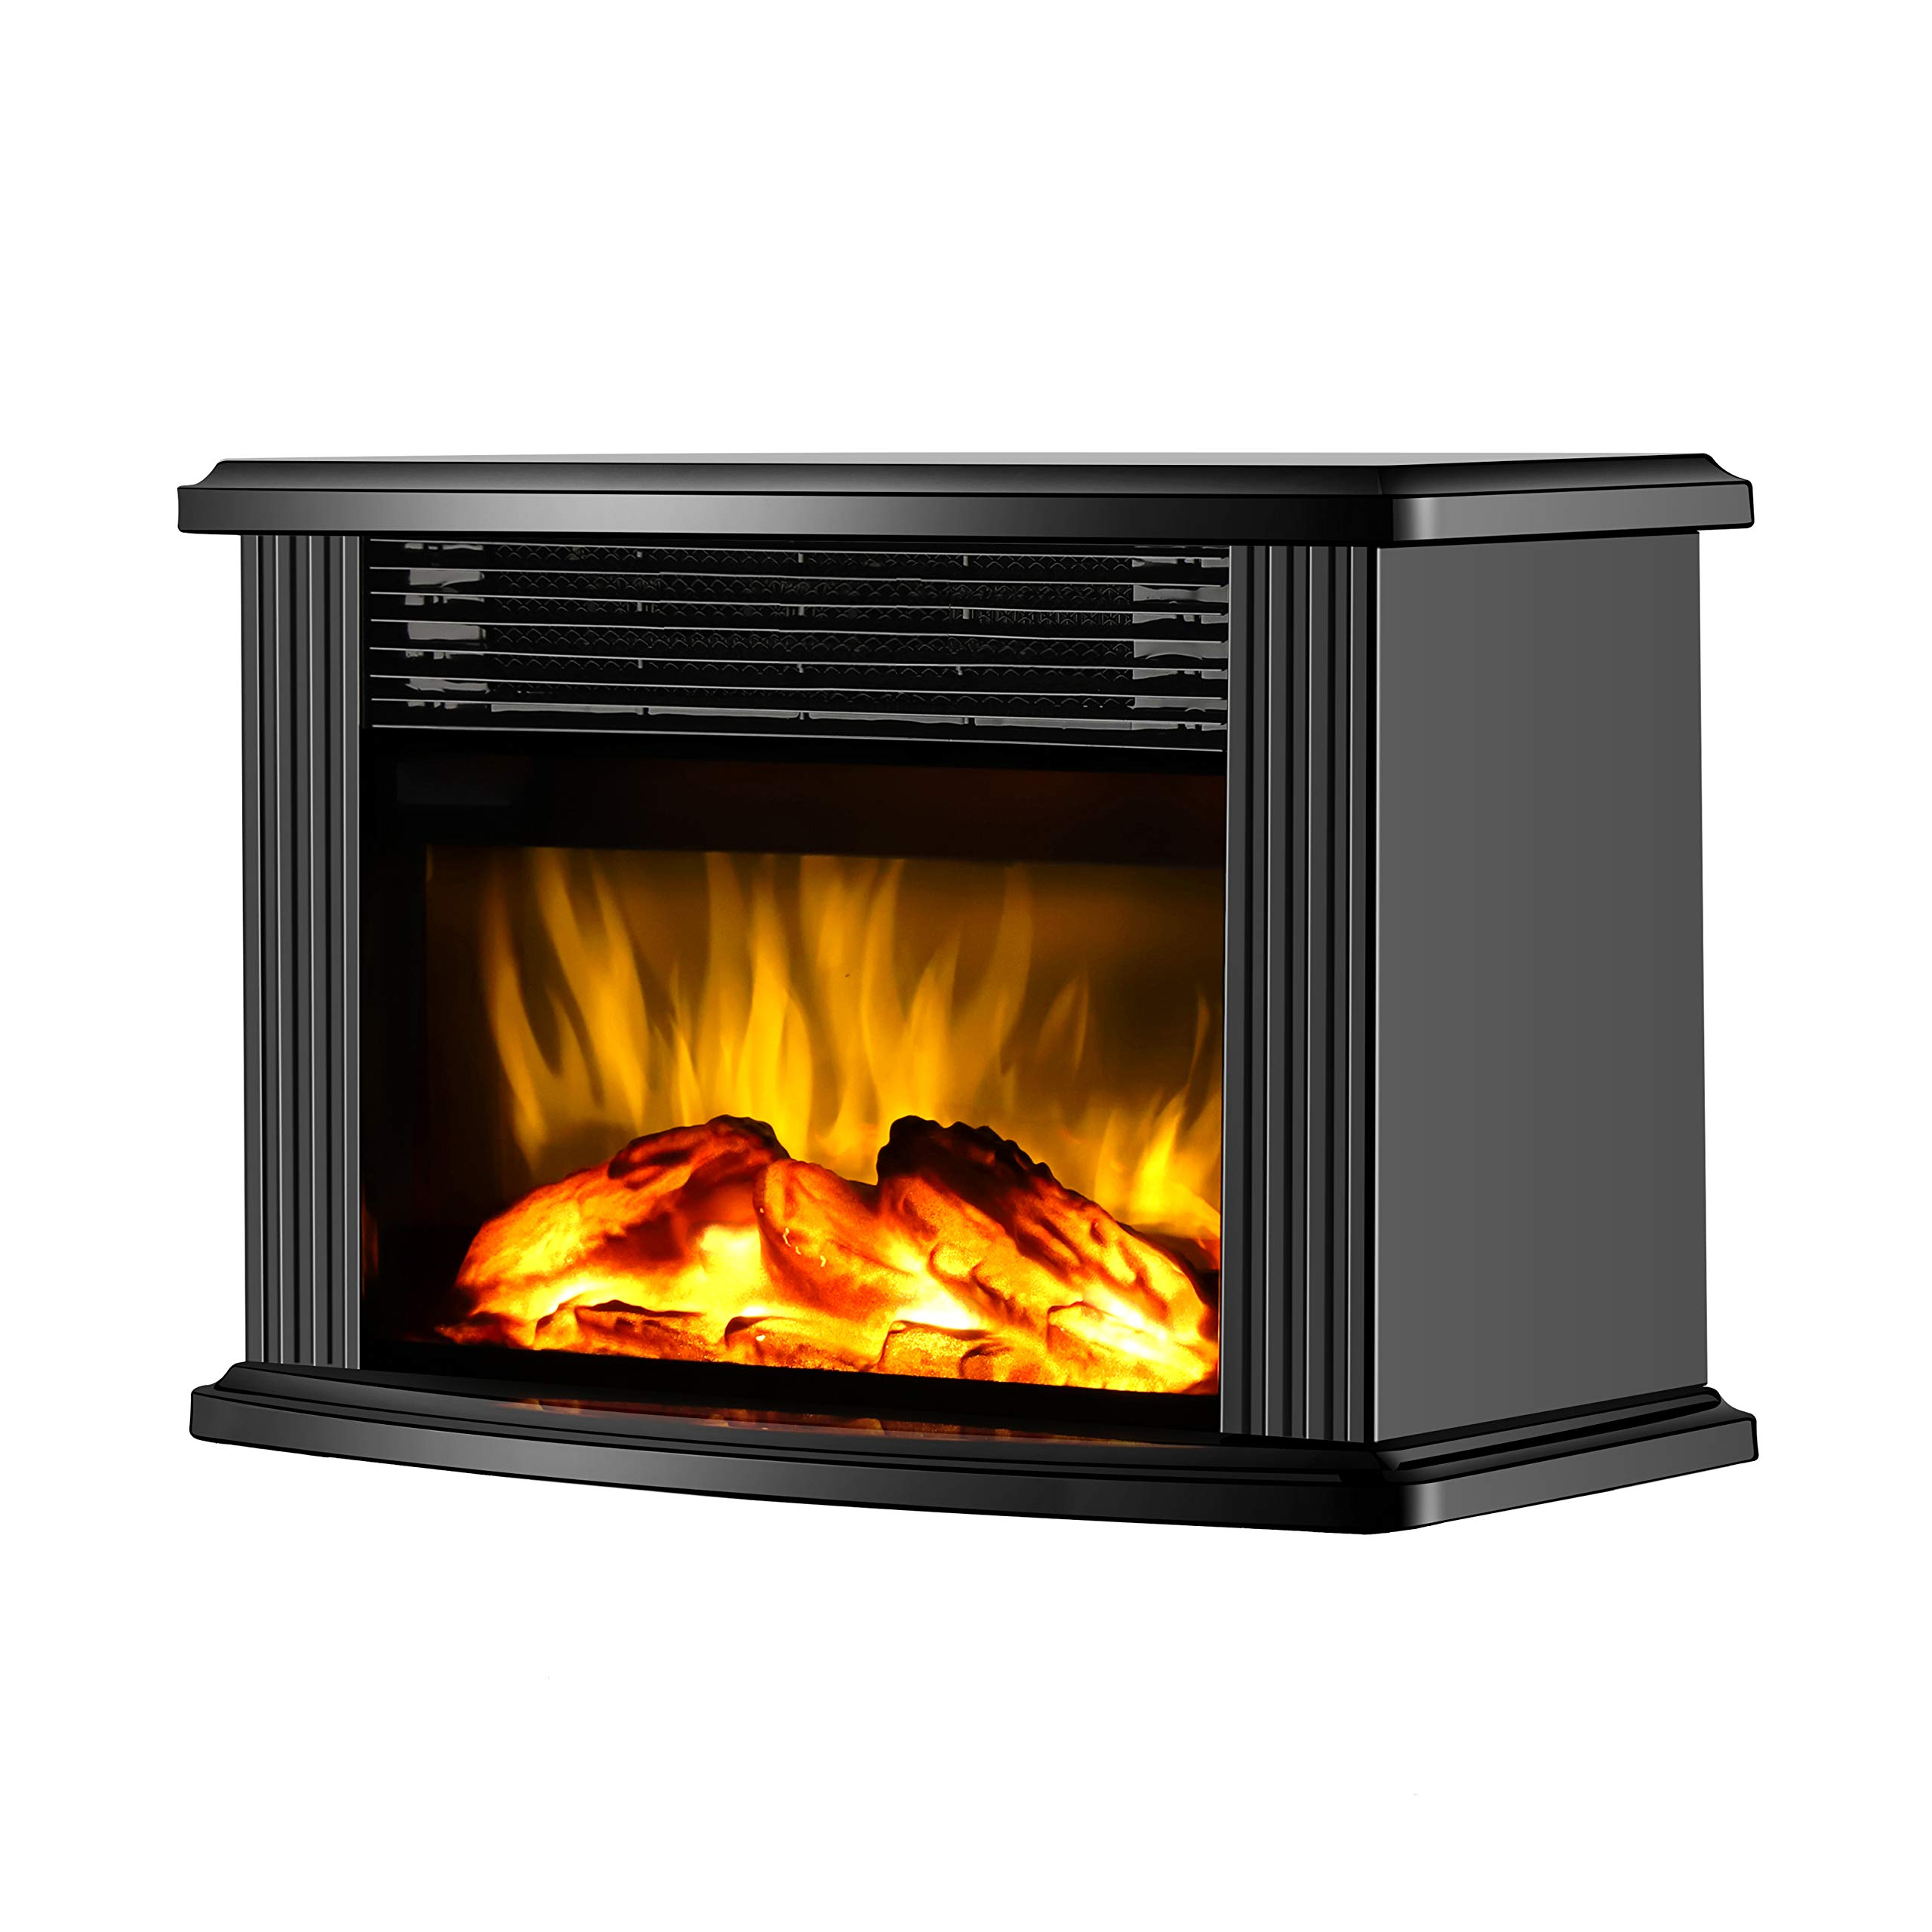 DONYER POWER Electric Fireplace Tabletop